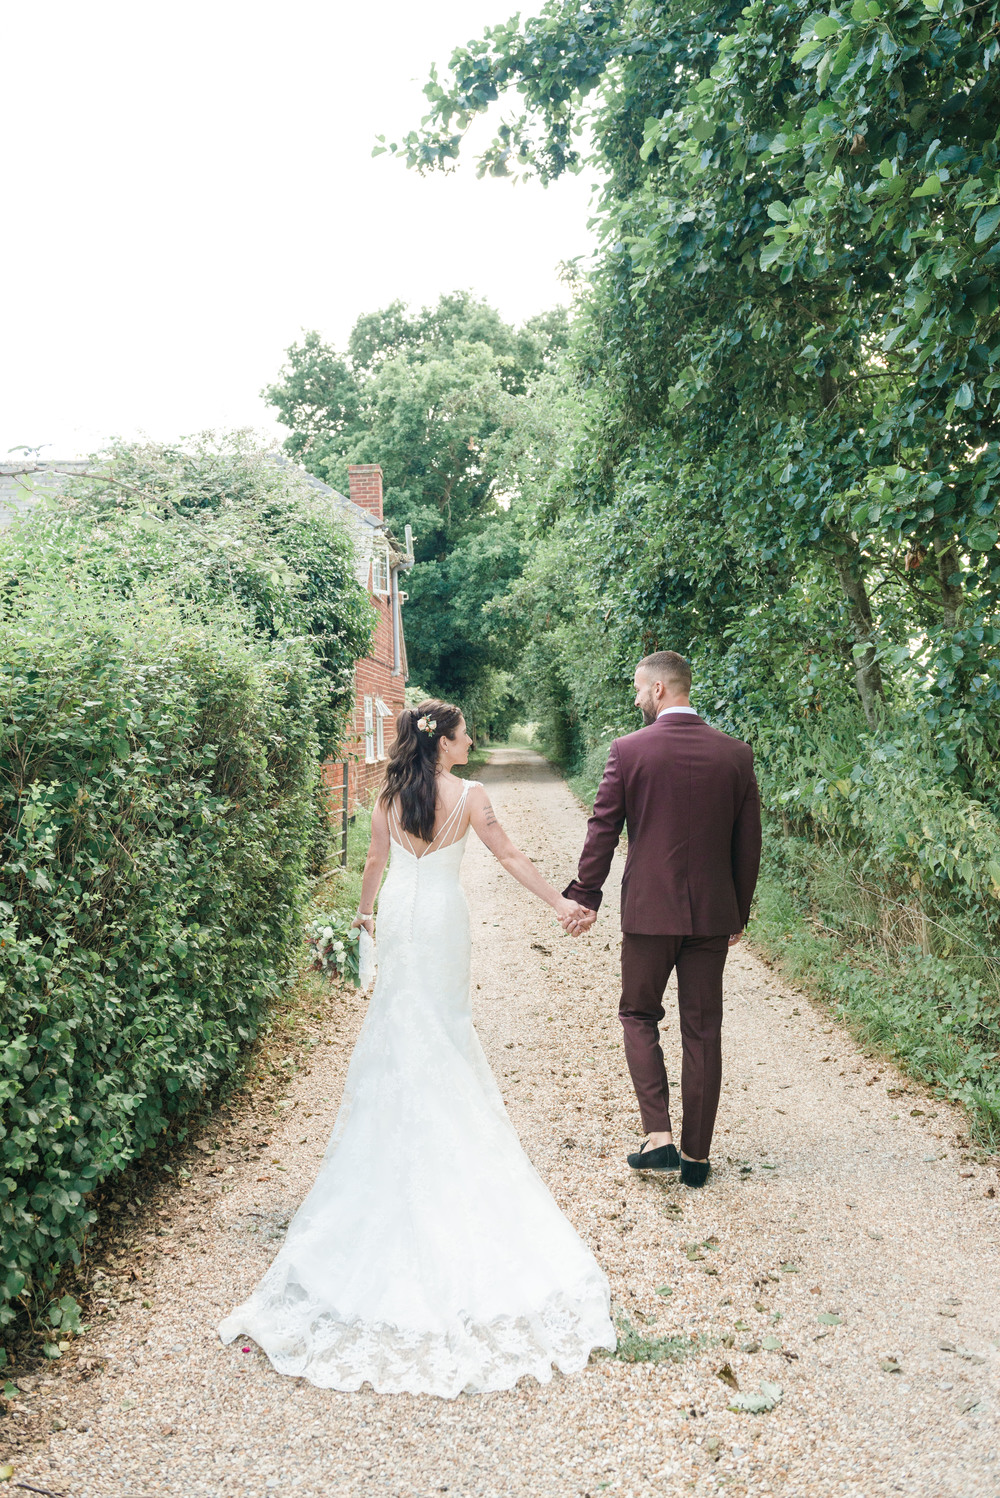 hannah-mcclune-photography-mill-house-hotel-swallowfield-rustic-wedding-burgundy-and-peach-wedding-41